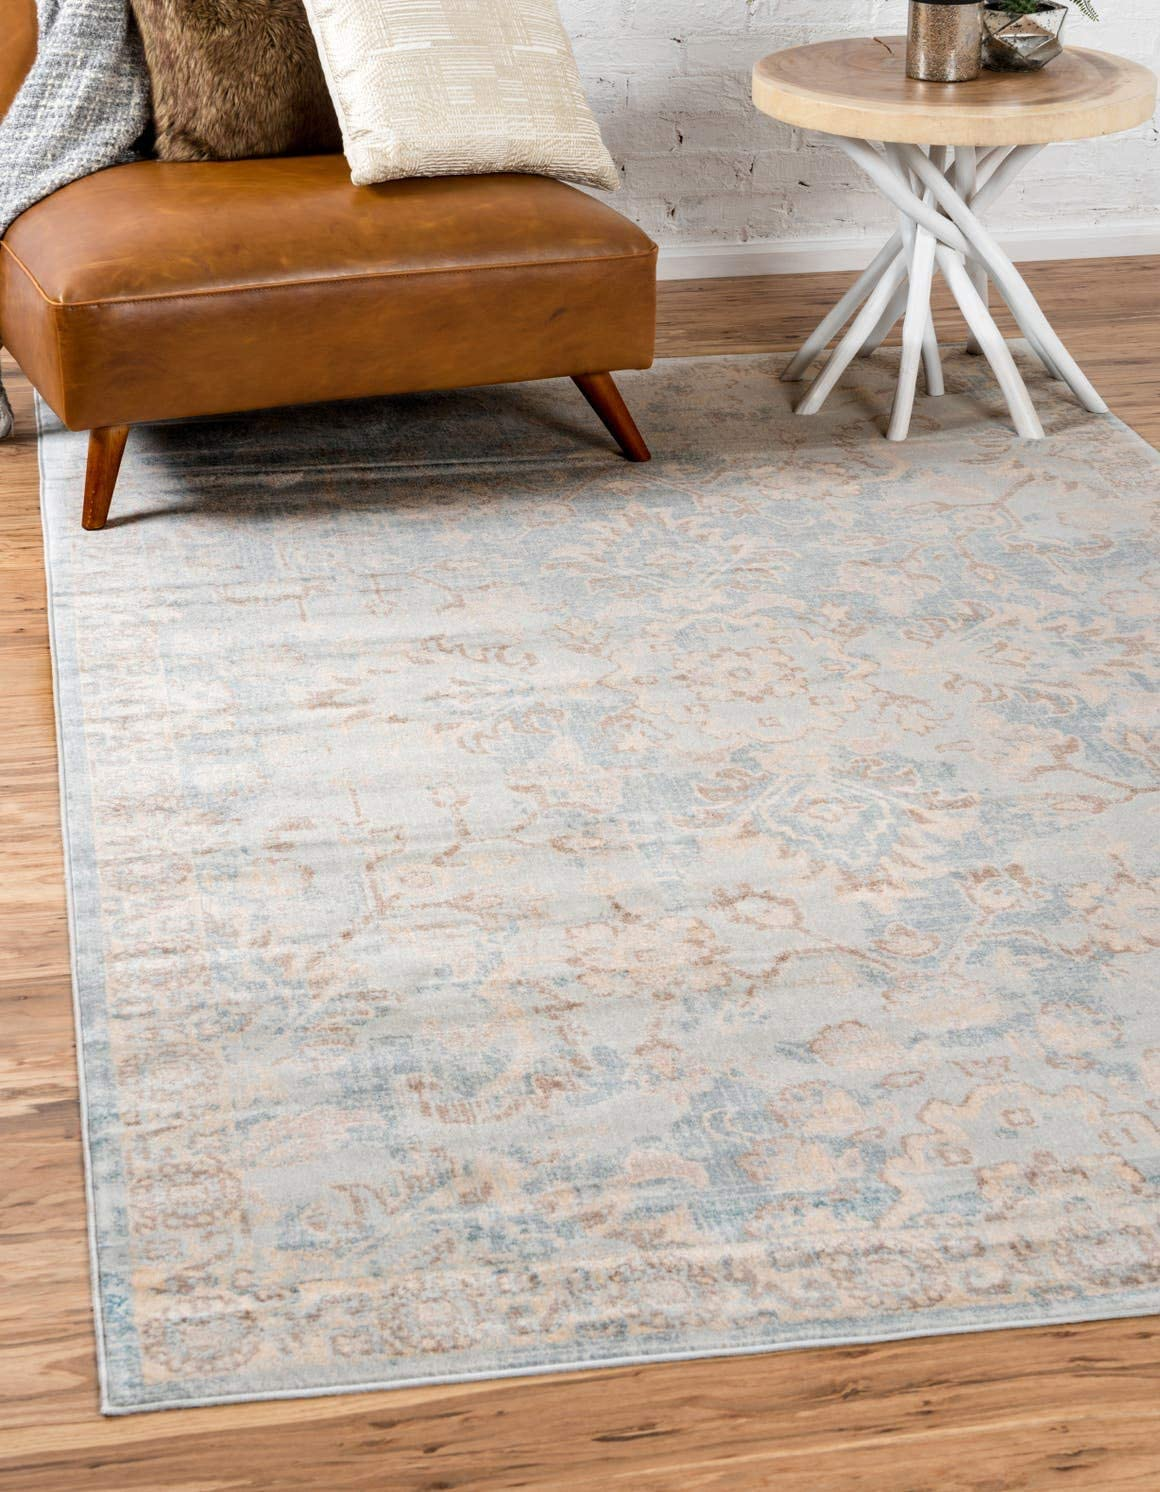 Unique Loom Paris Collection Pastel Tones Traditional Distressed Light Blue Area Rug 9 0 x 12 0